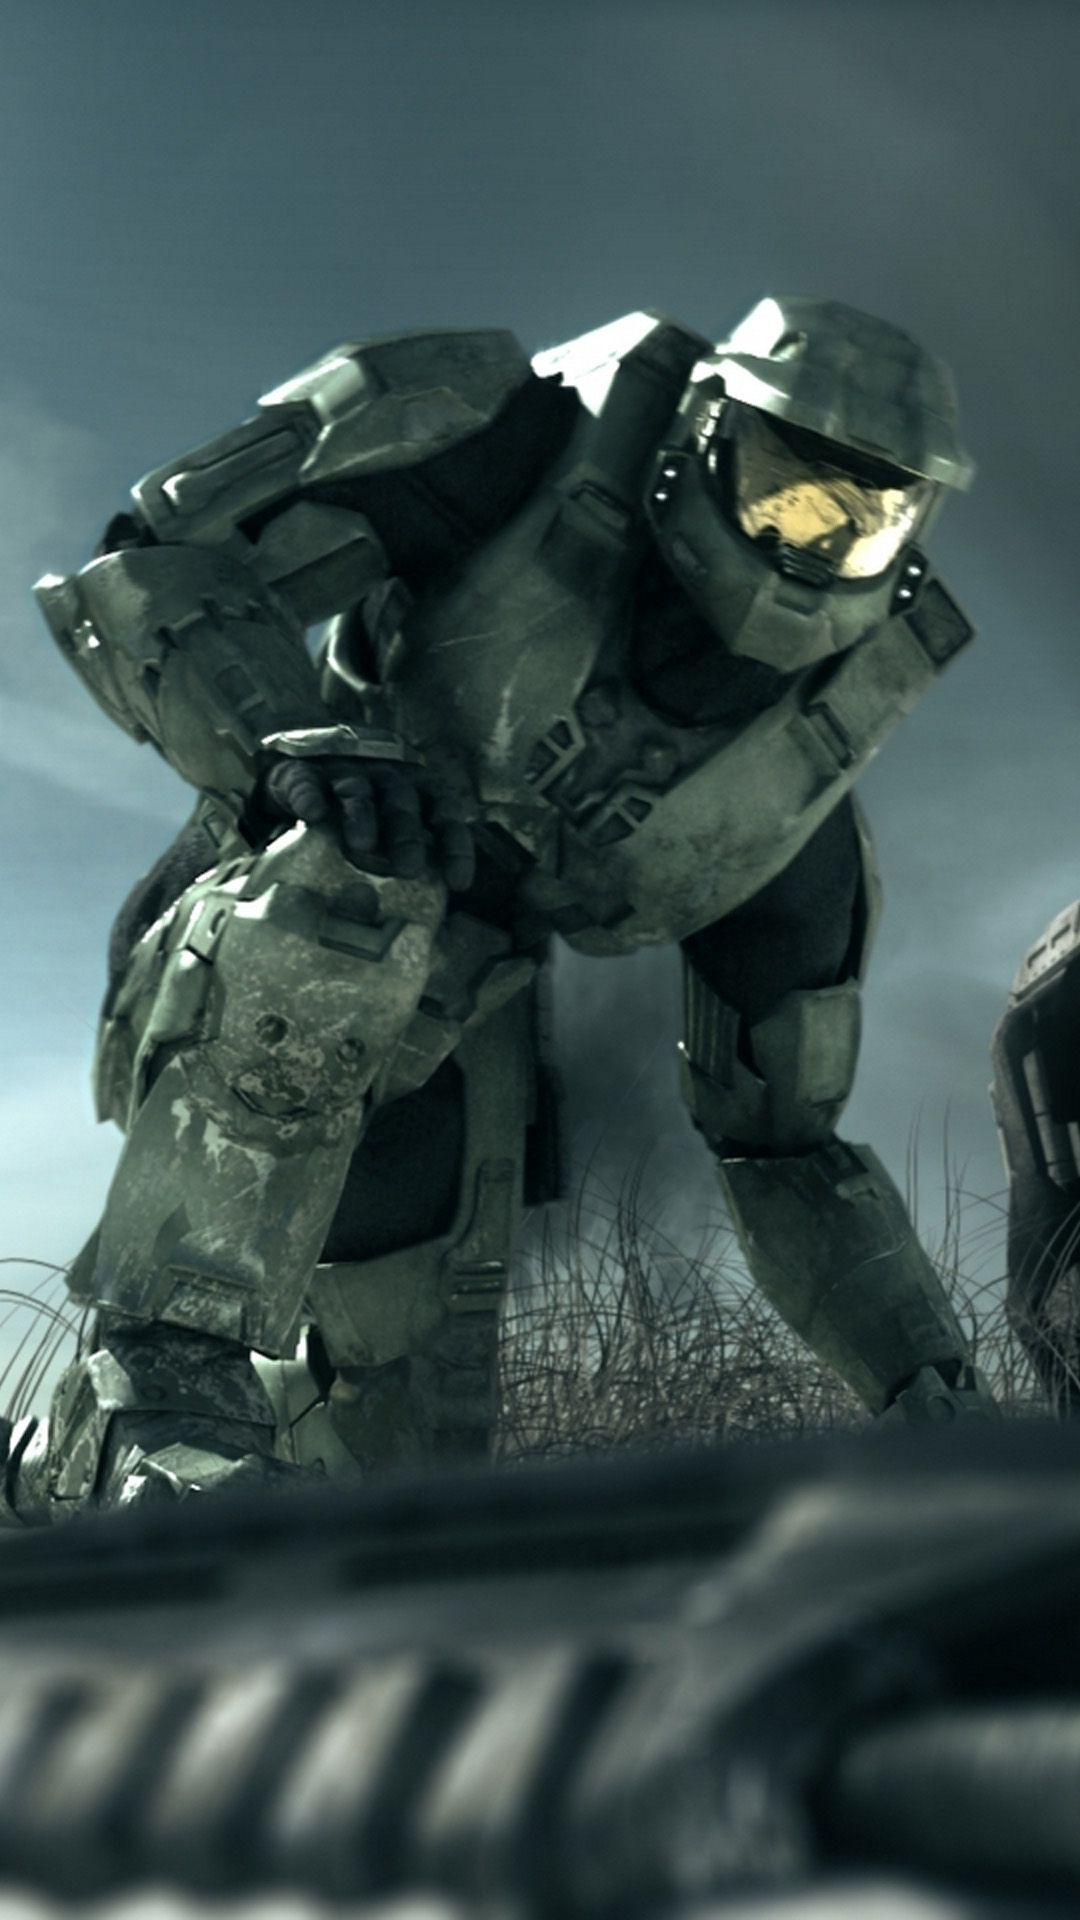 Halo Wallpaper Android Halo Wallpapers Halo Master Chief